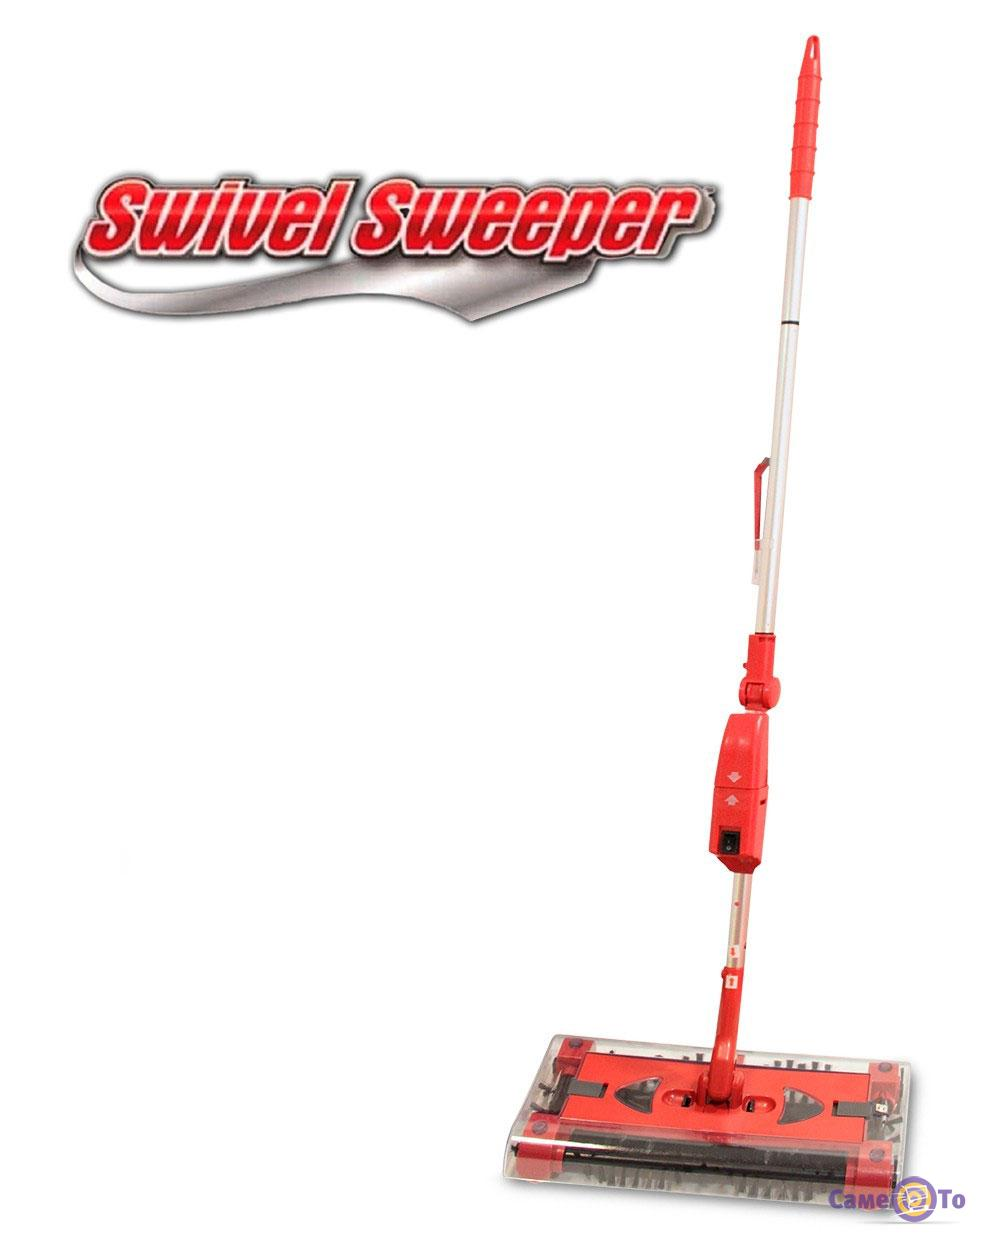 Электровеник-щетка Swivel Sweeper G6